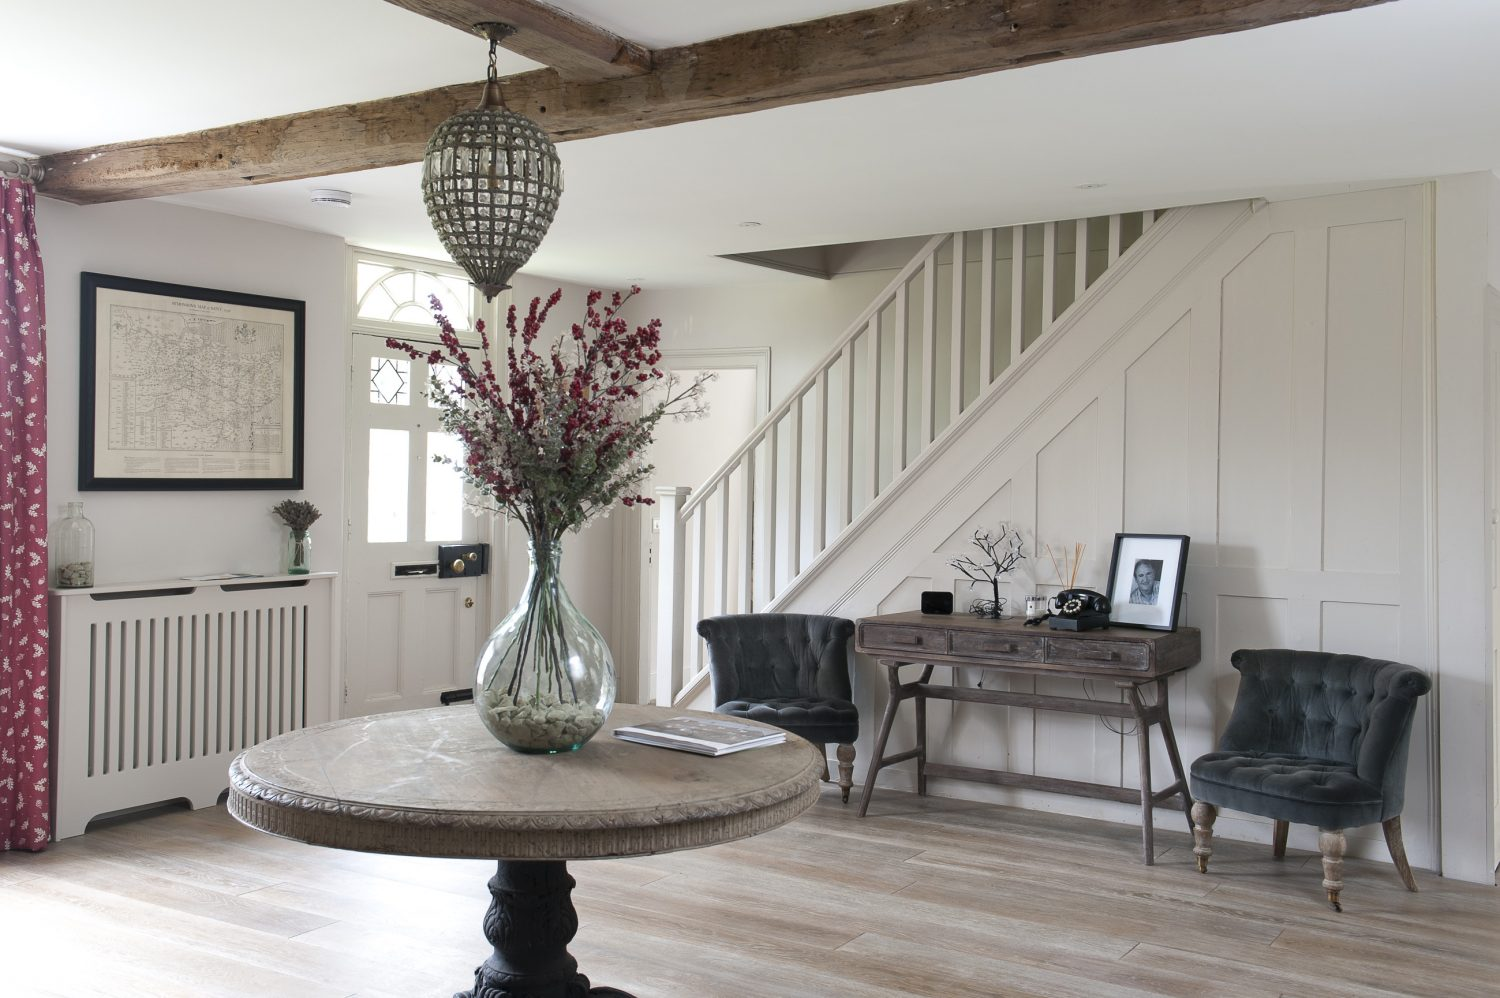 Ben and Perrine found their hall table in an antique shop in the Cotswolds. The teardrop wire and glass lampshade above it is from Not On The High Street and much of the furniture is from Graham & Green, whose 'look' complements the unpretentious but comfortable interior of Tanner House